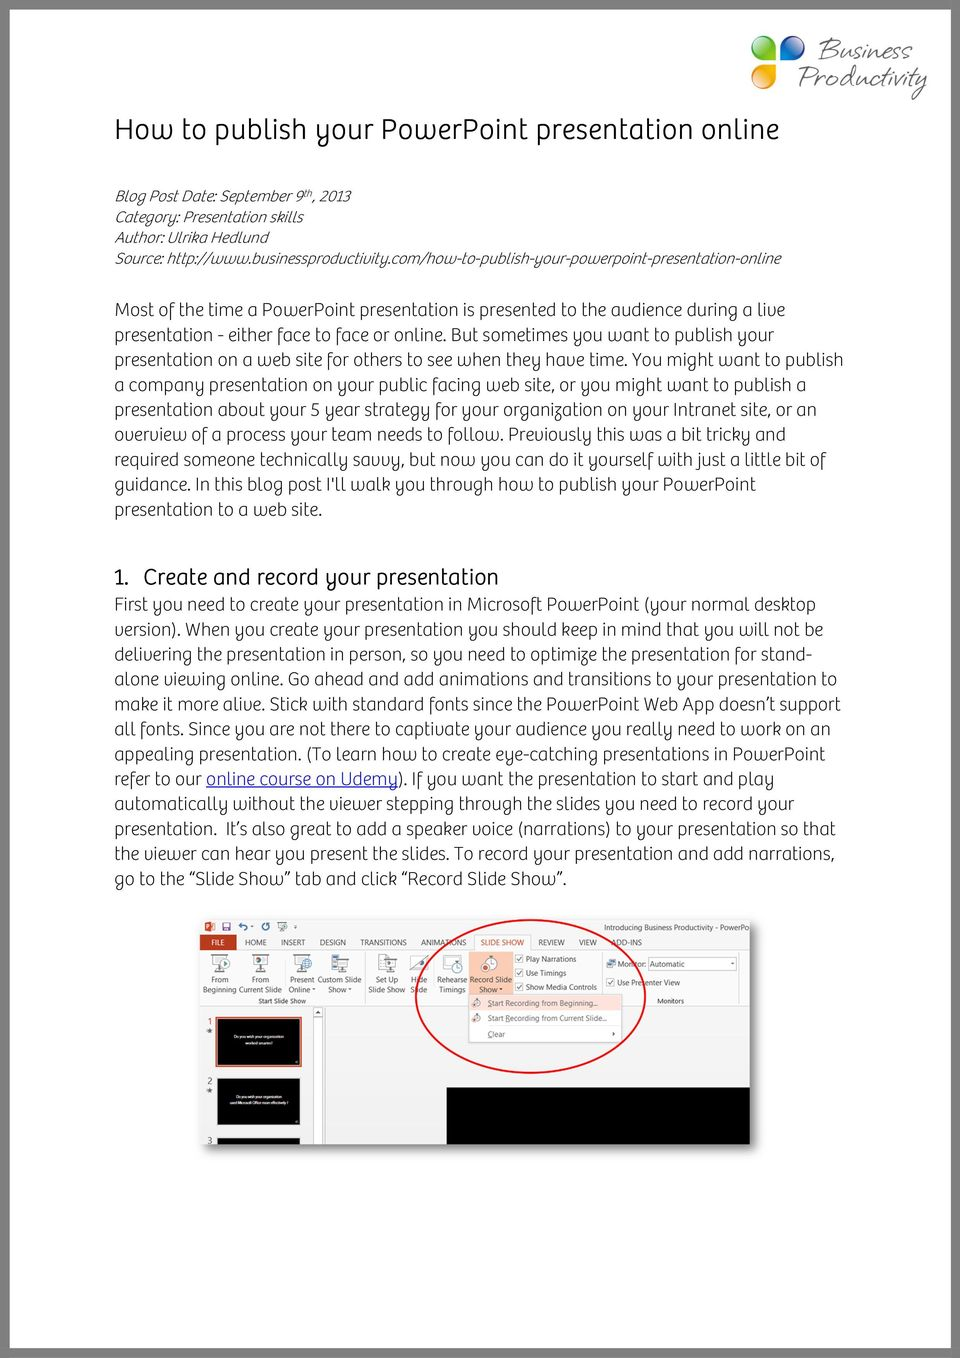 How to publish your PowerPoint presentation online - PDF